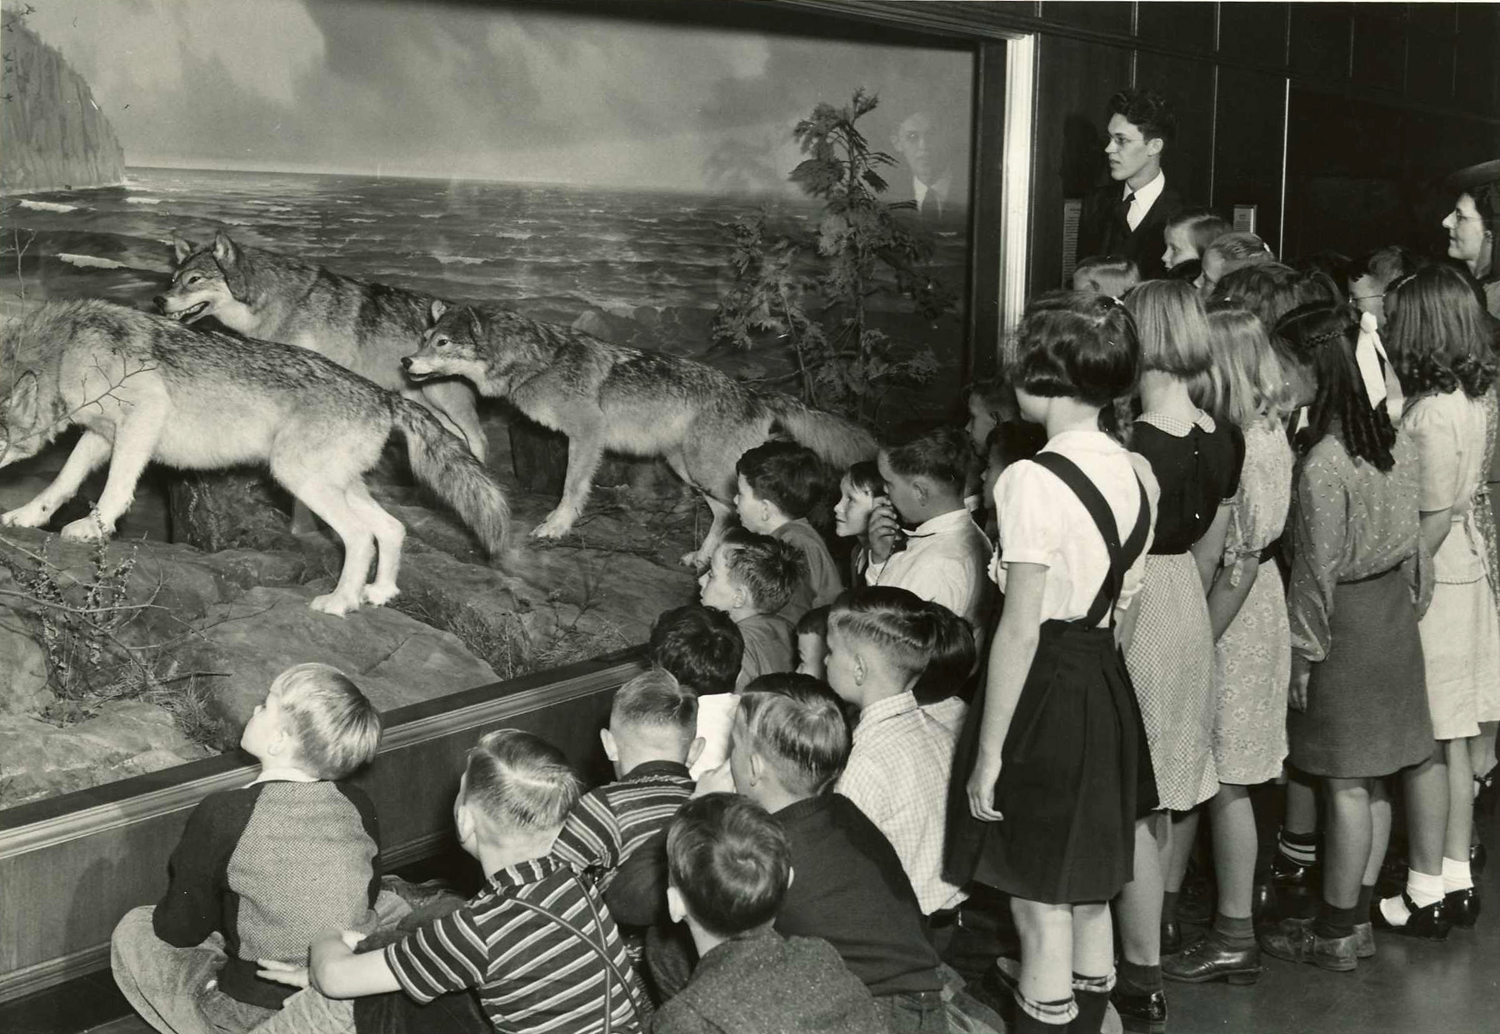 school group looks intently at the wolves diorama in a black and white photo